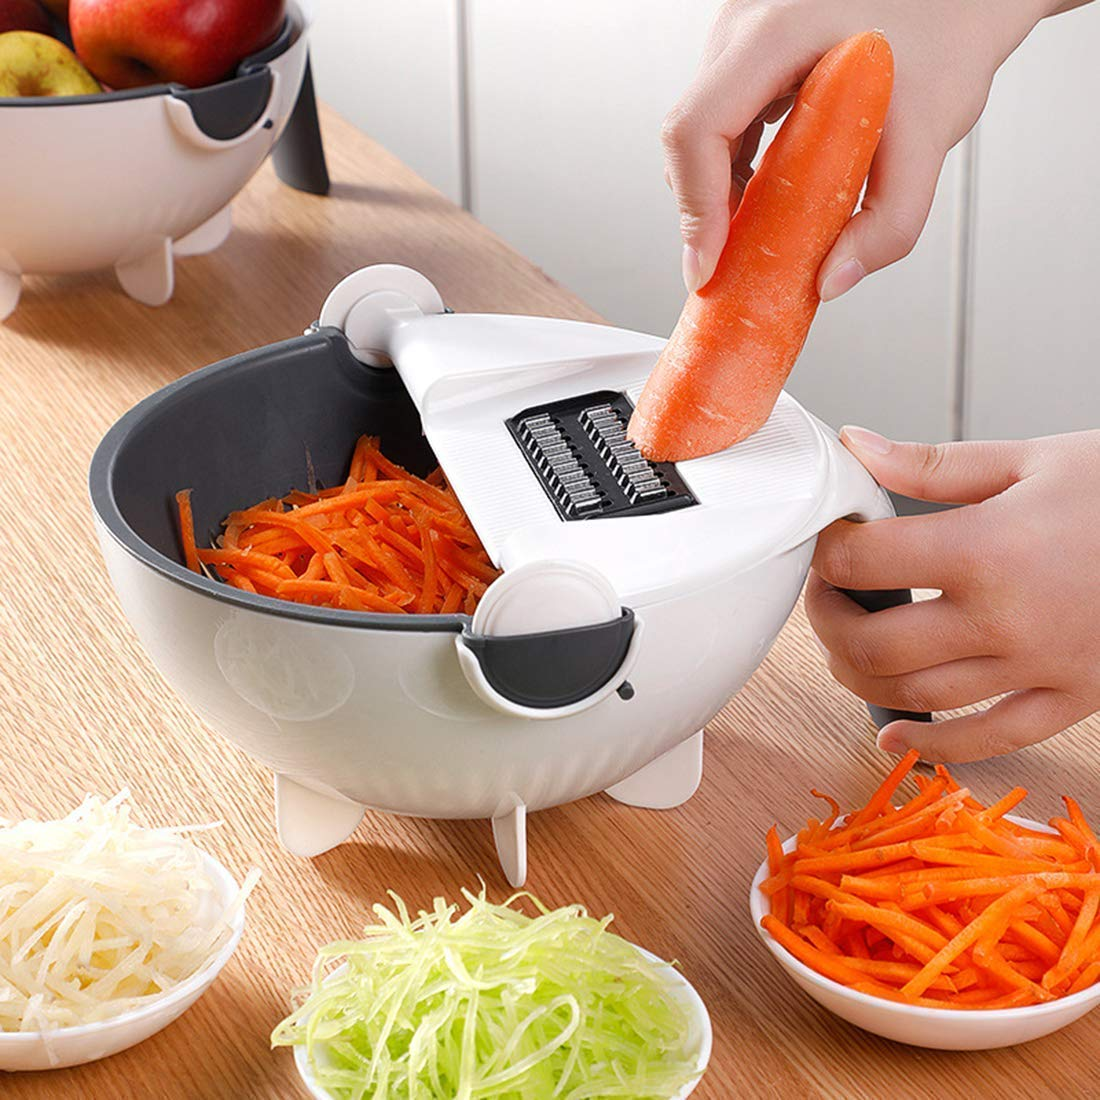 A rotate vegetable peeler is used to grind carrot along with others